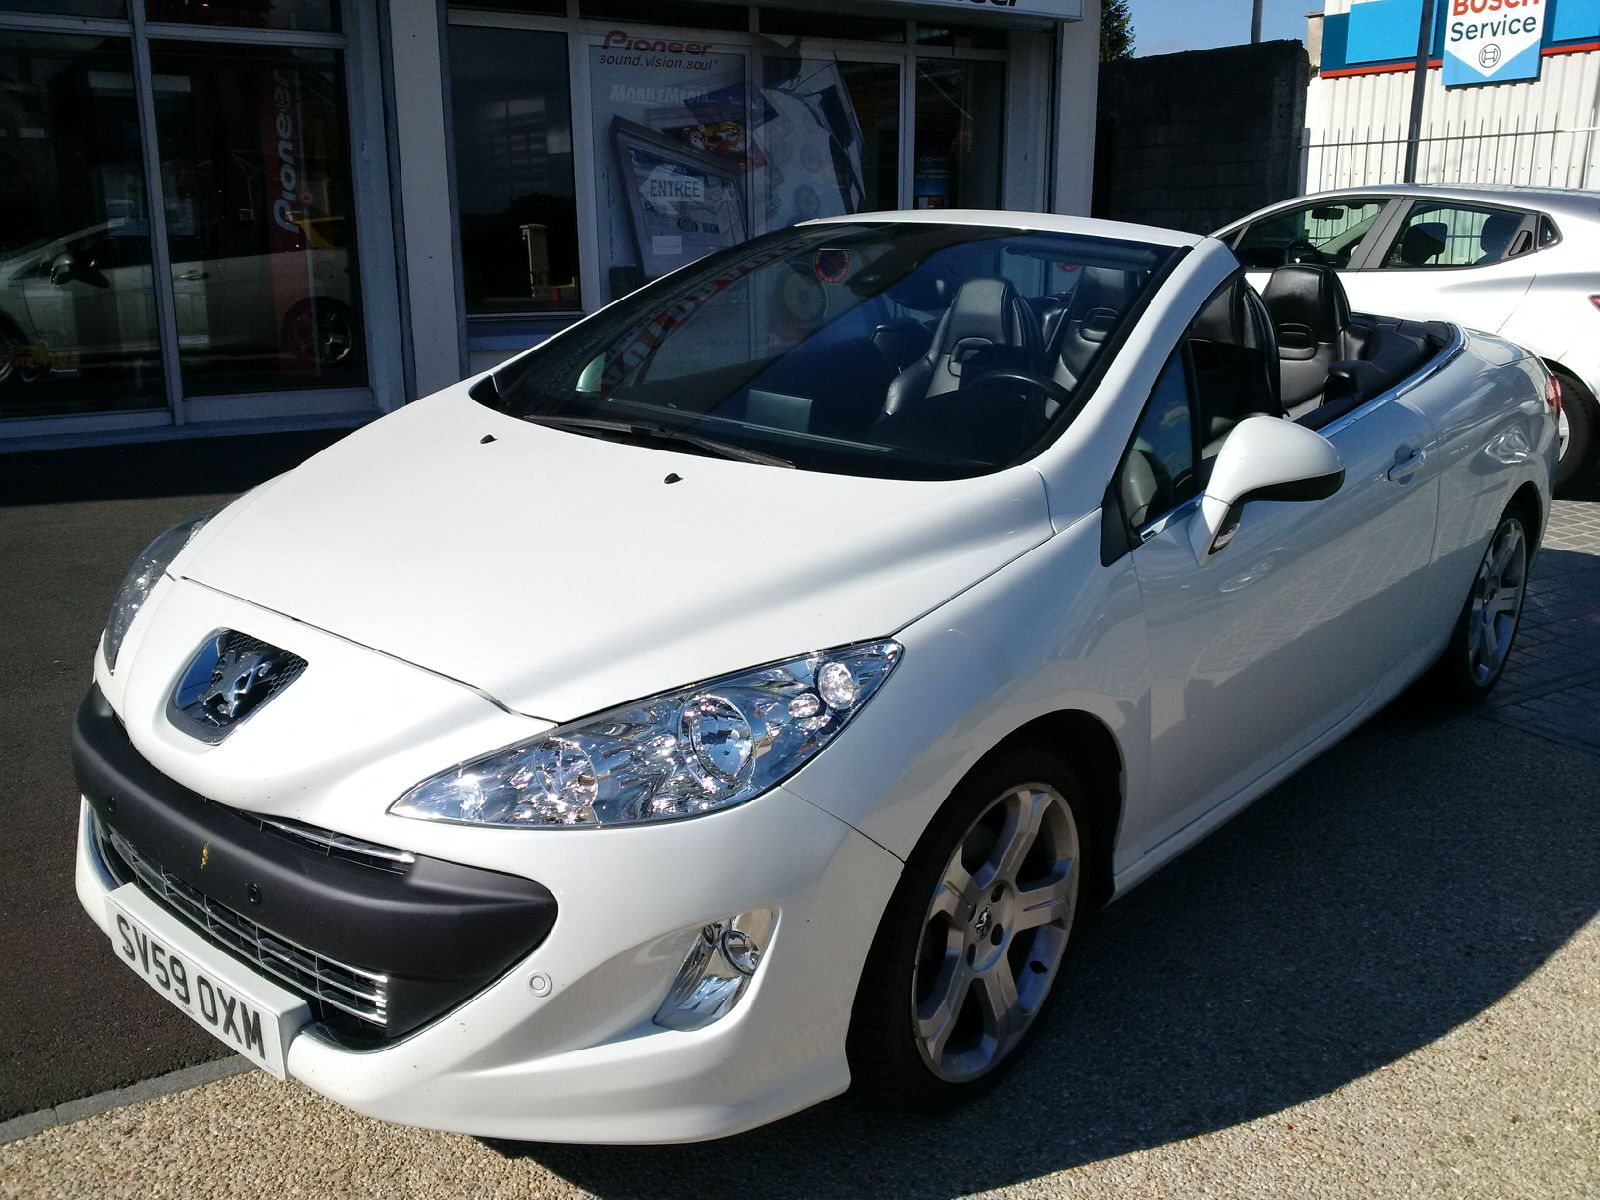 PEUGEOT 308CC 1.6 156 THP UK REGISTRATION